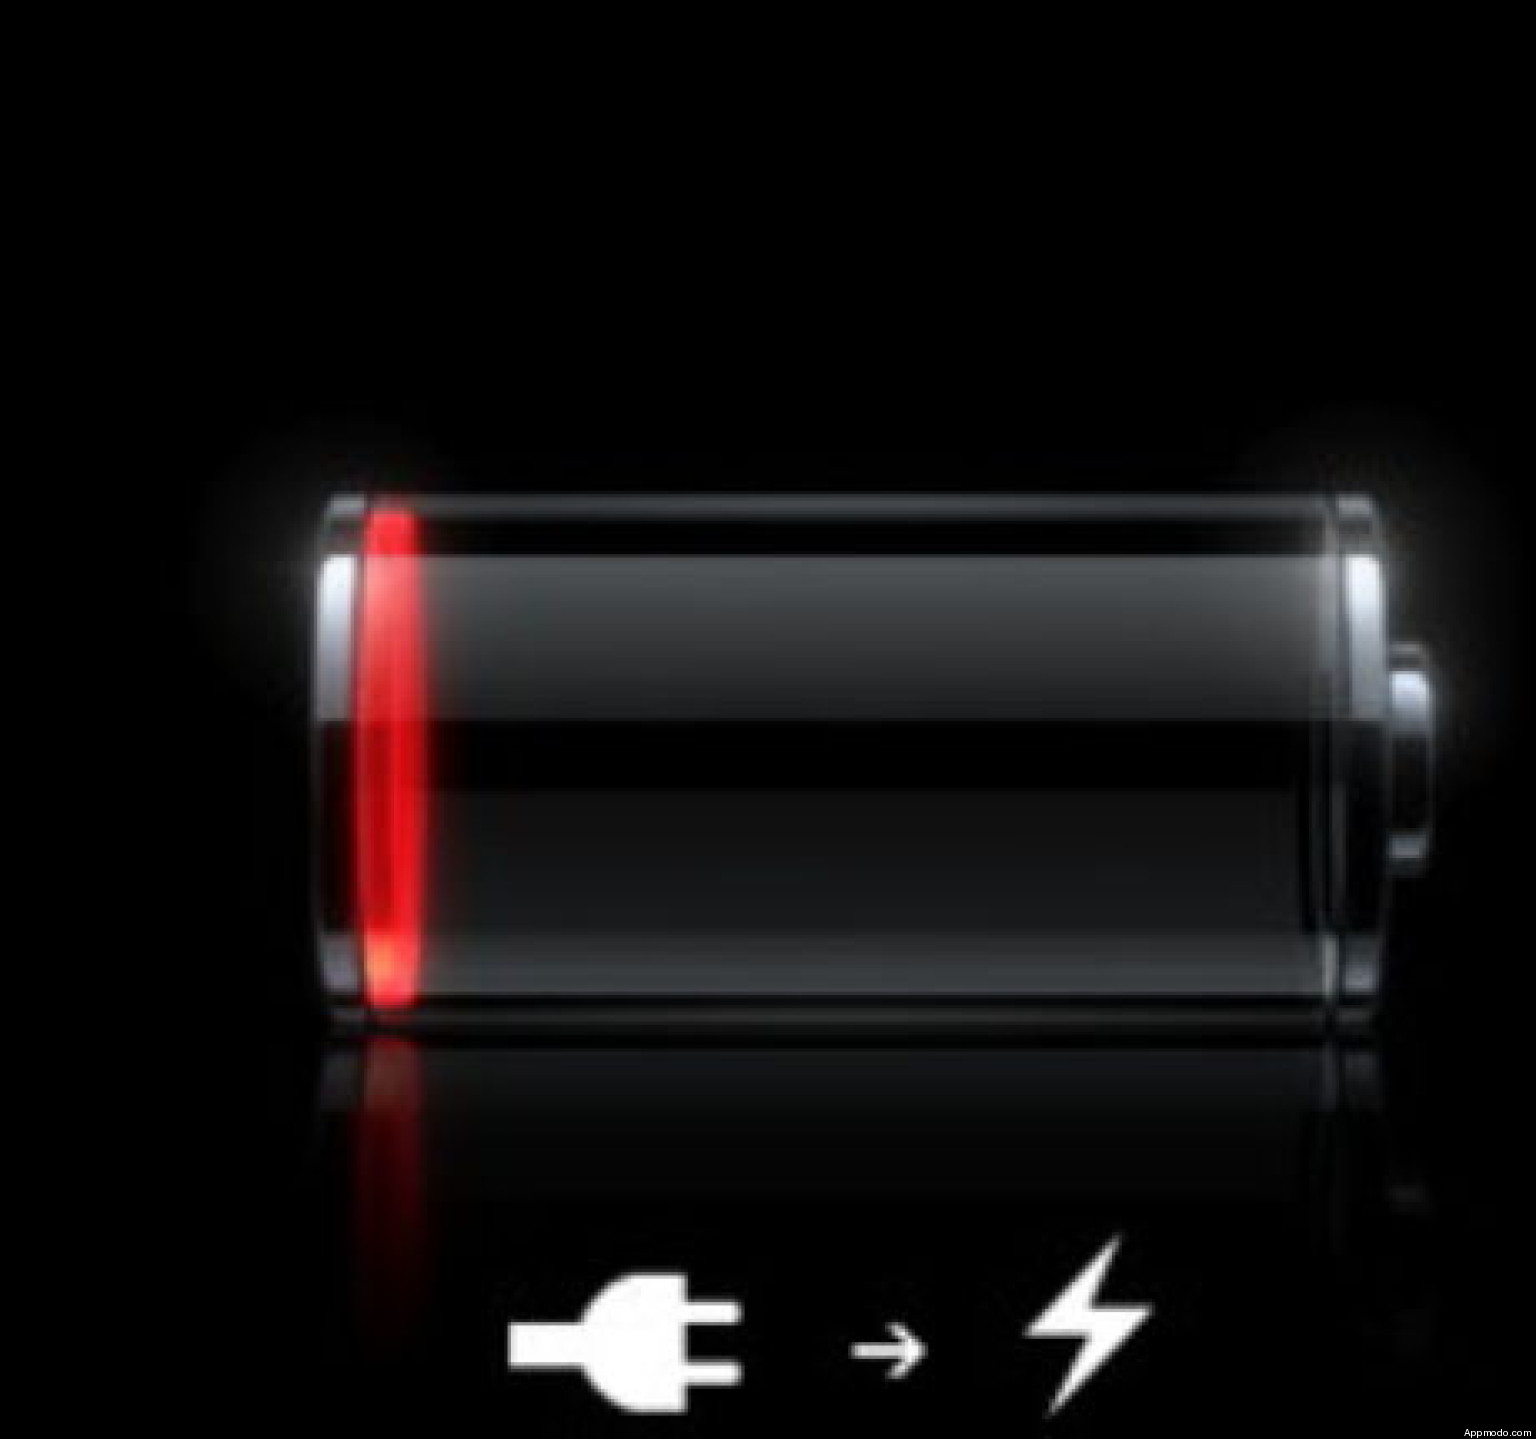 10 IPhone Battery Icon Images - iPhone 5 Battery Charging Icon